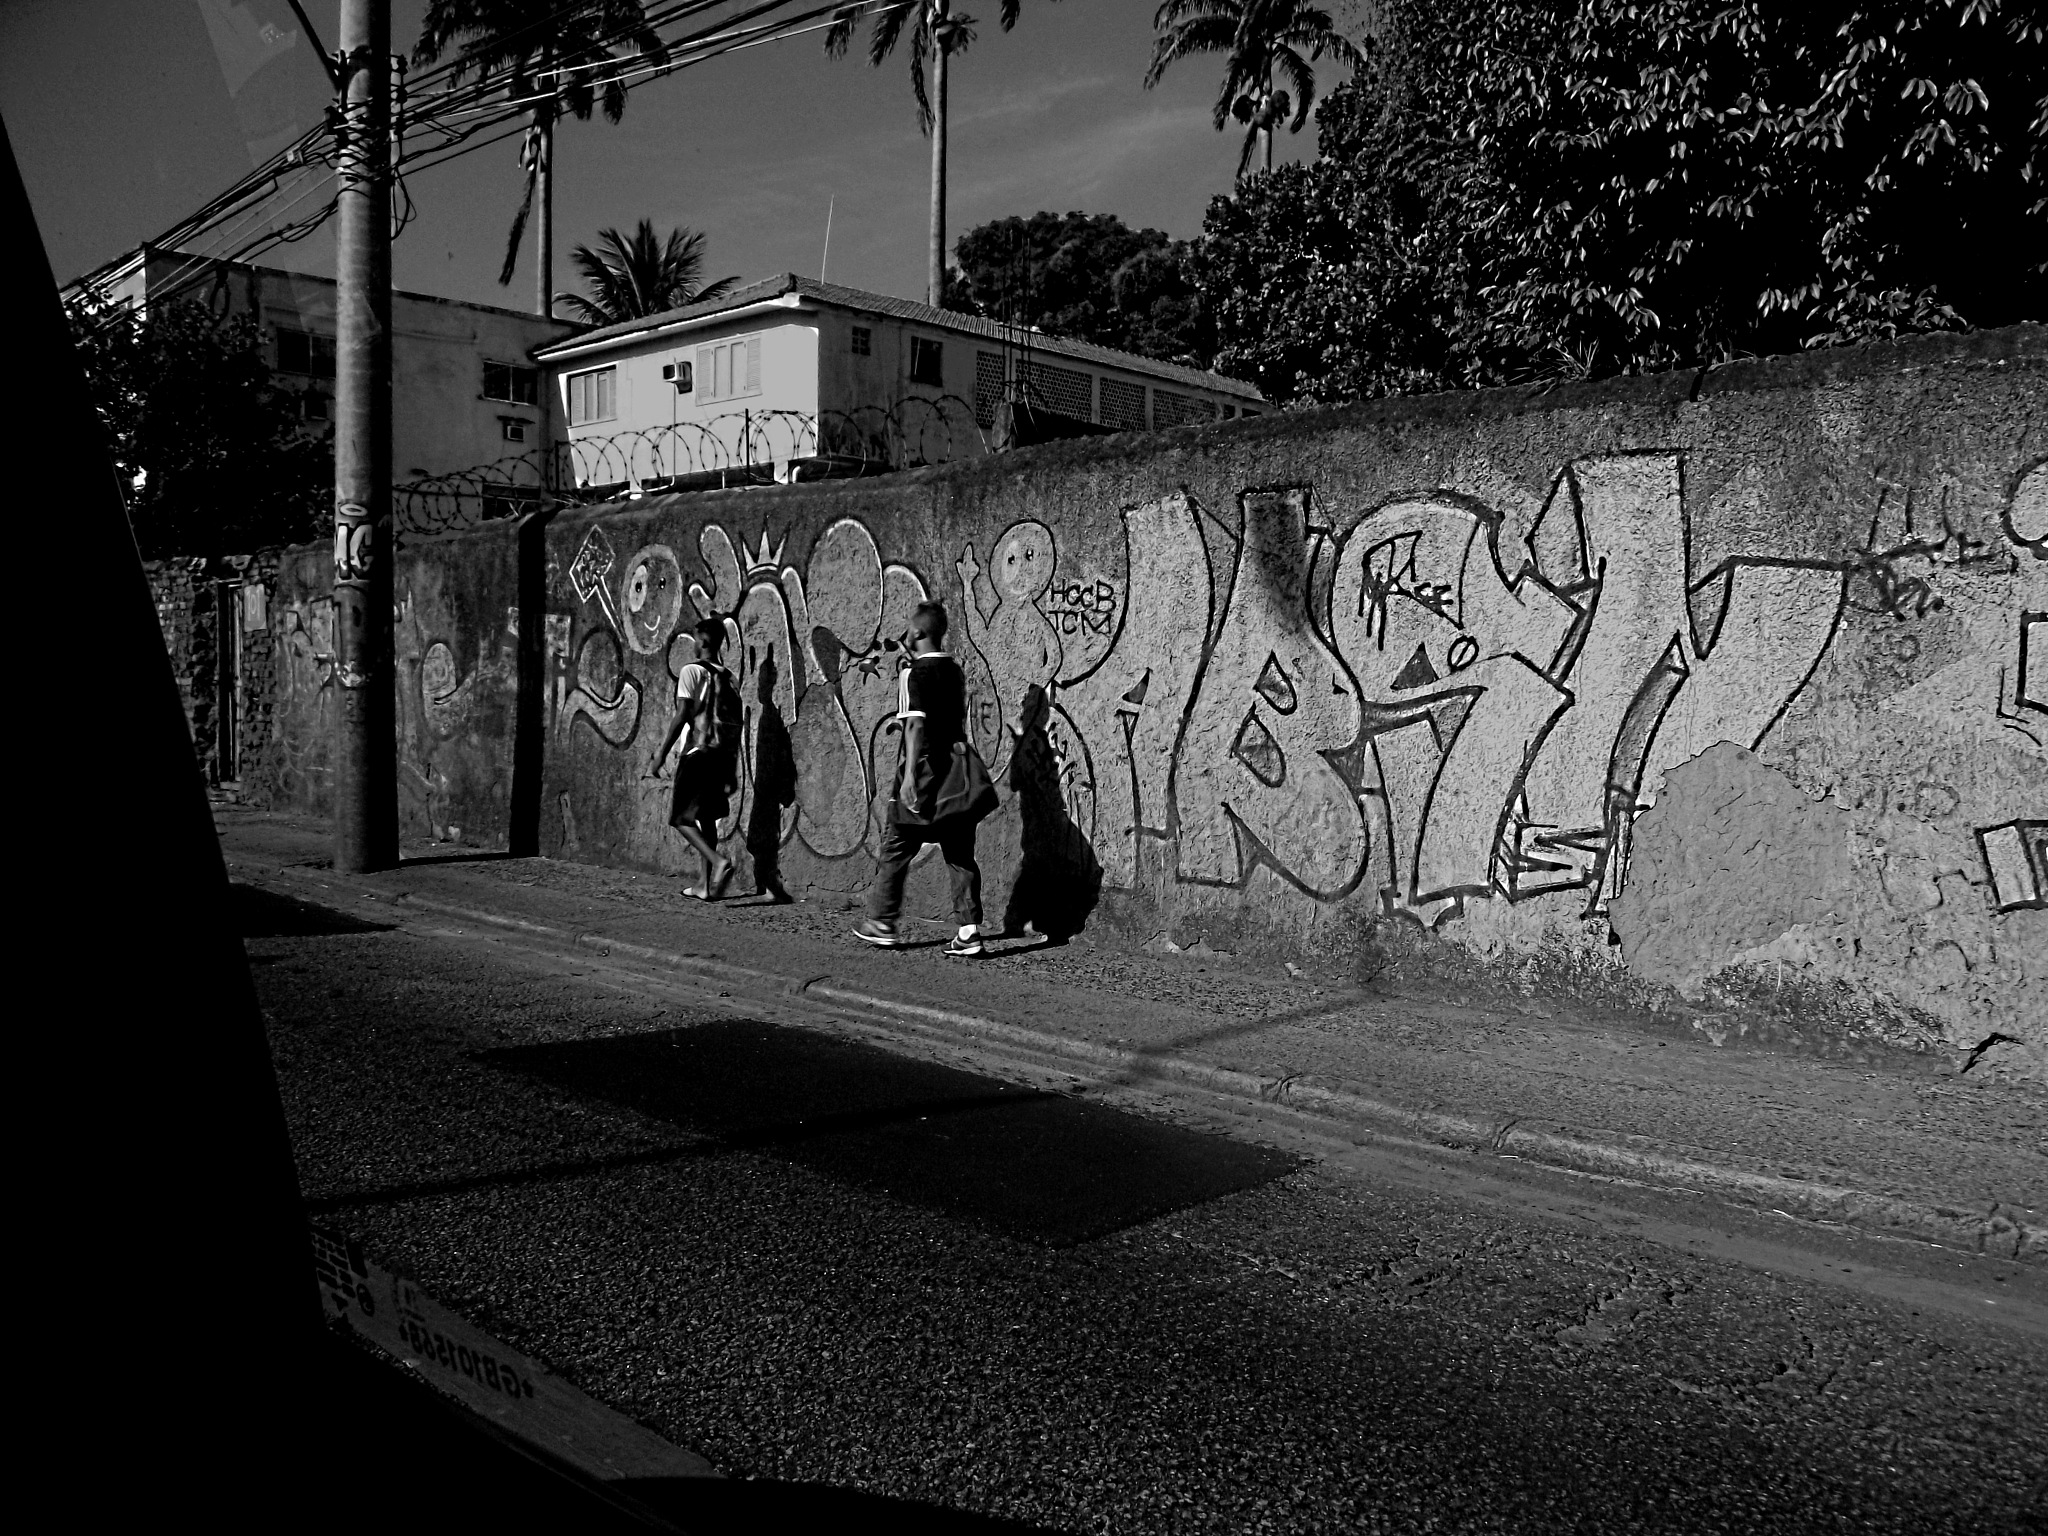 People going , from the taxi by Honorio Carlos Pereira Braga